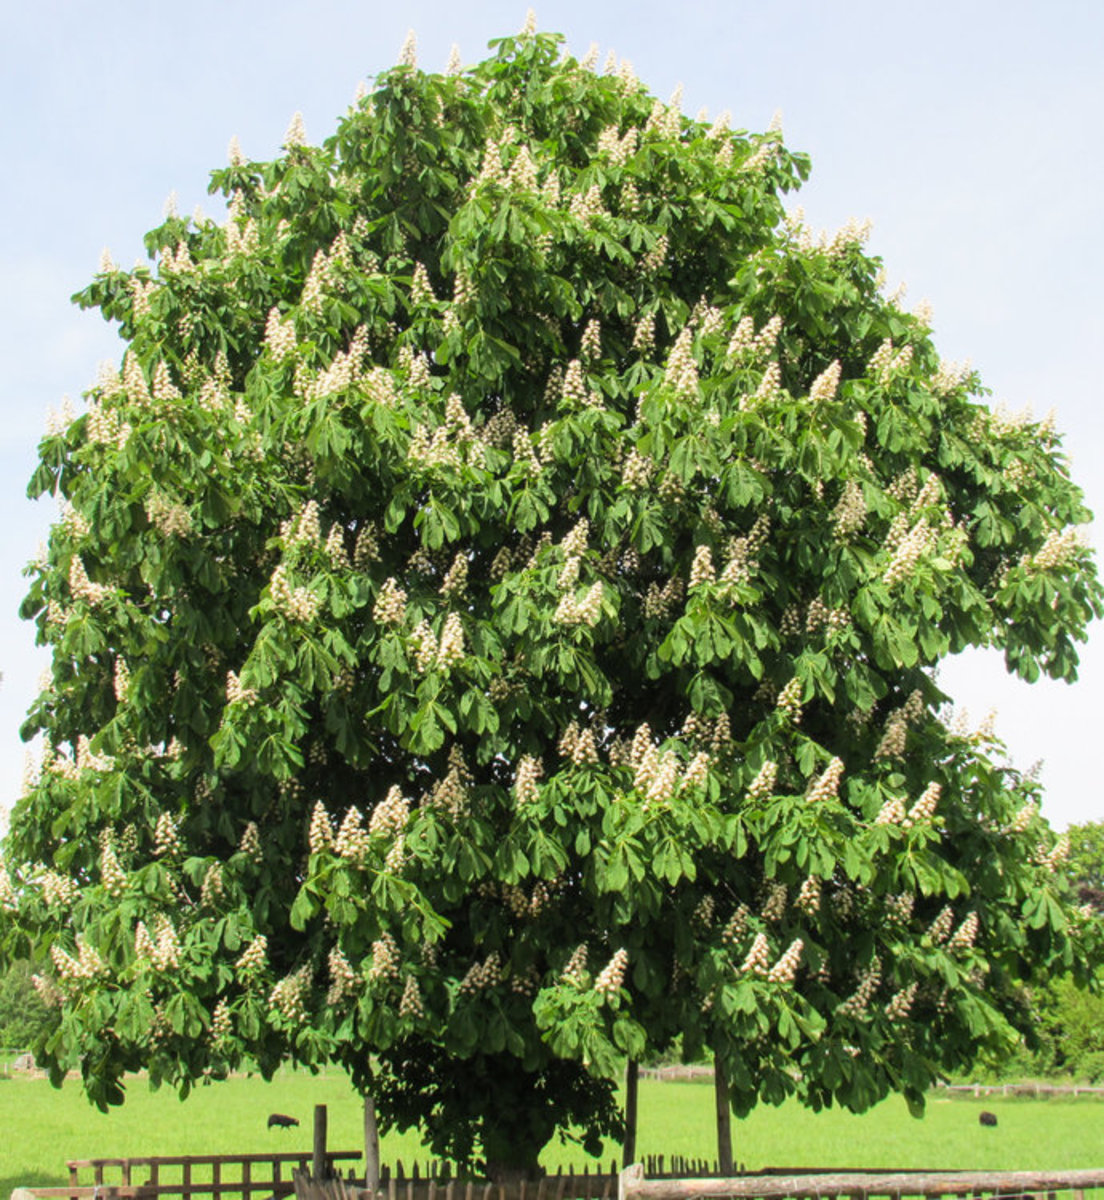 Chestnut Tree in Springtime